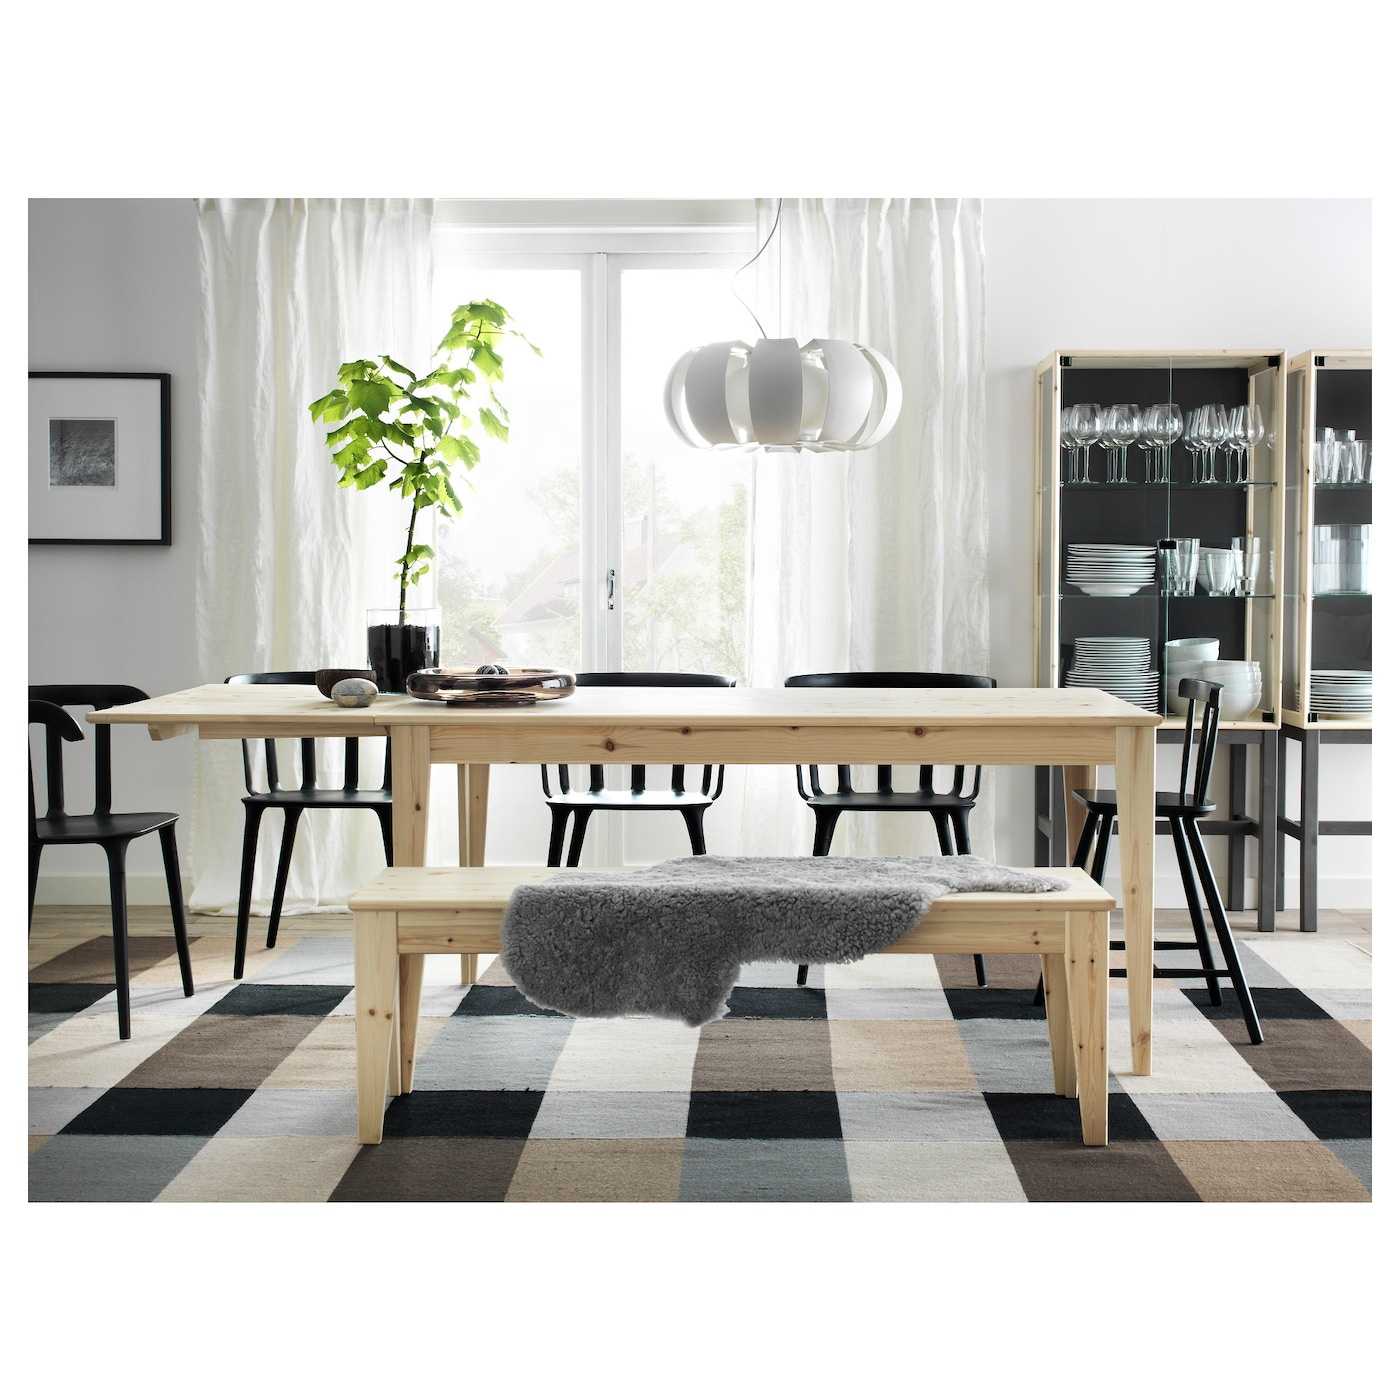 stockholm tapis tiss plat fait main carreaux brun 250x350 cm ikea. Black Bedroom Furniture Sets. Home Design Ideas